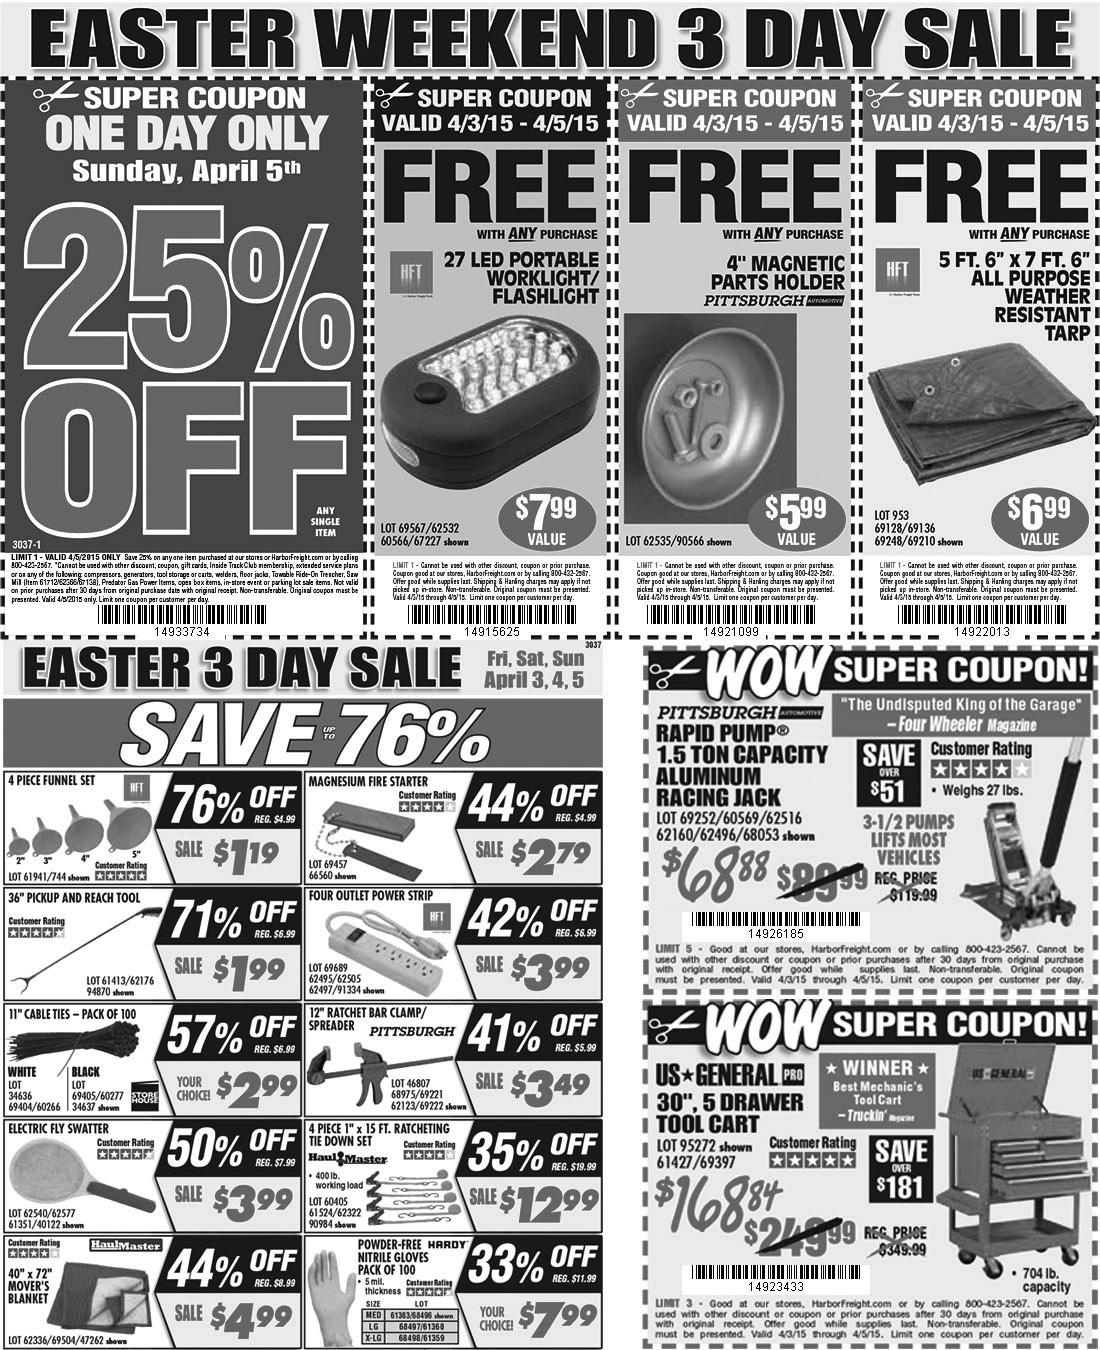 Harbor Freight Coupon June 2017 25% off a single item & more at Harbor Freight Tools, or online via promo code 14933734